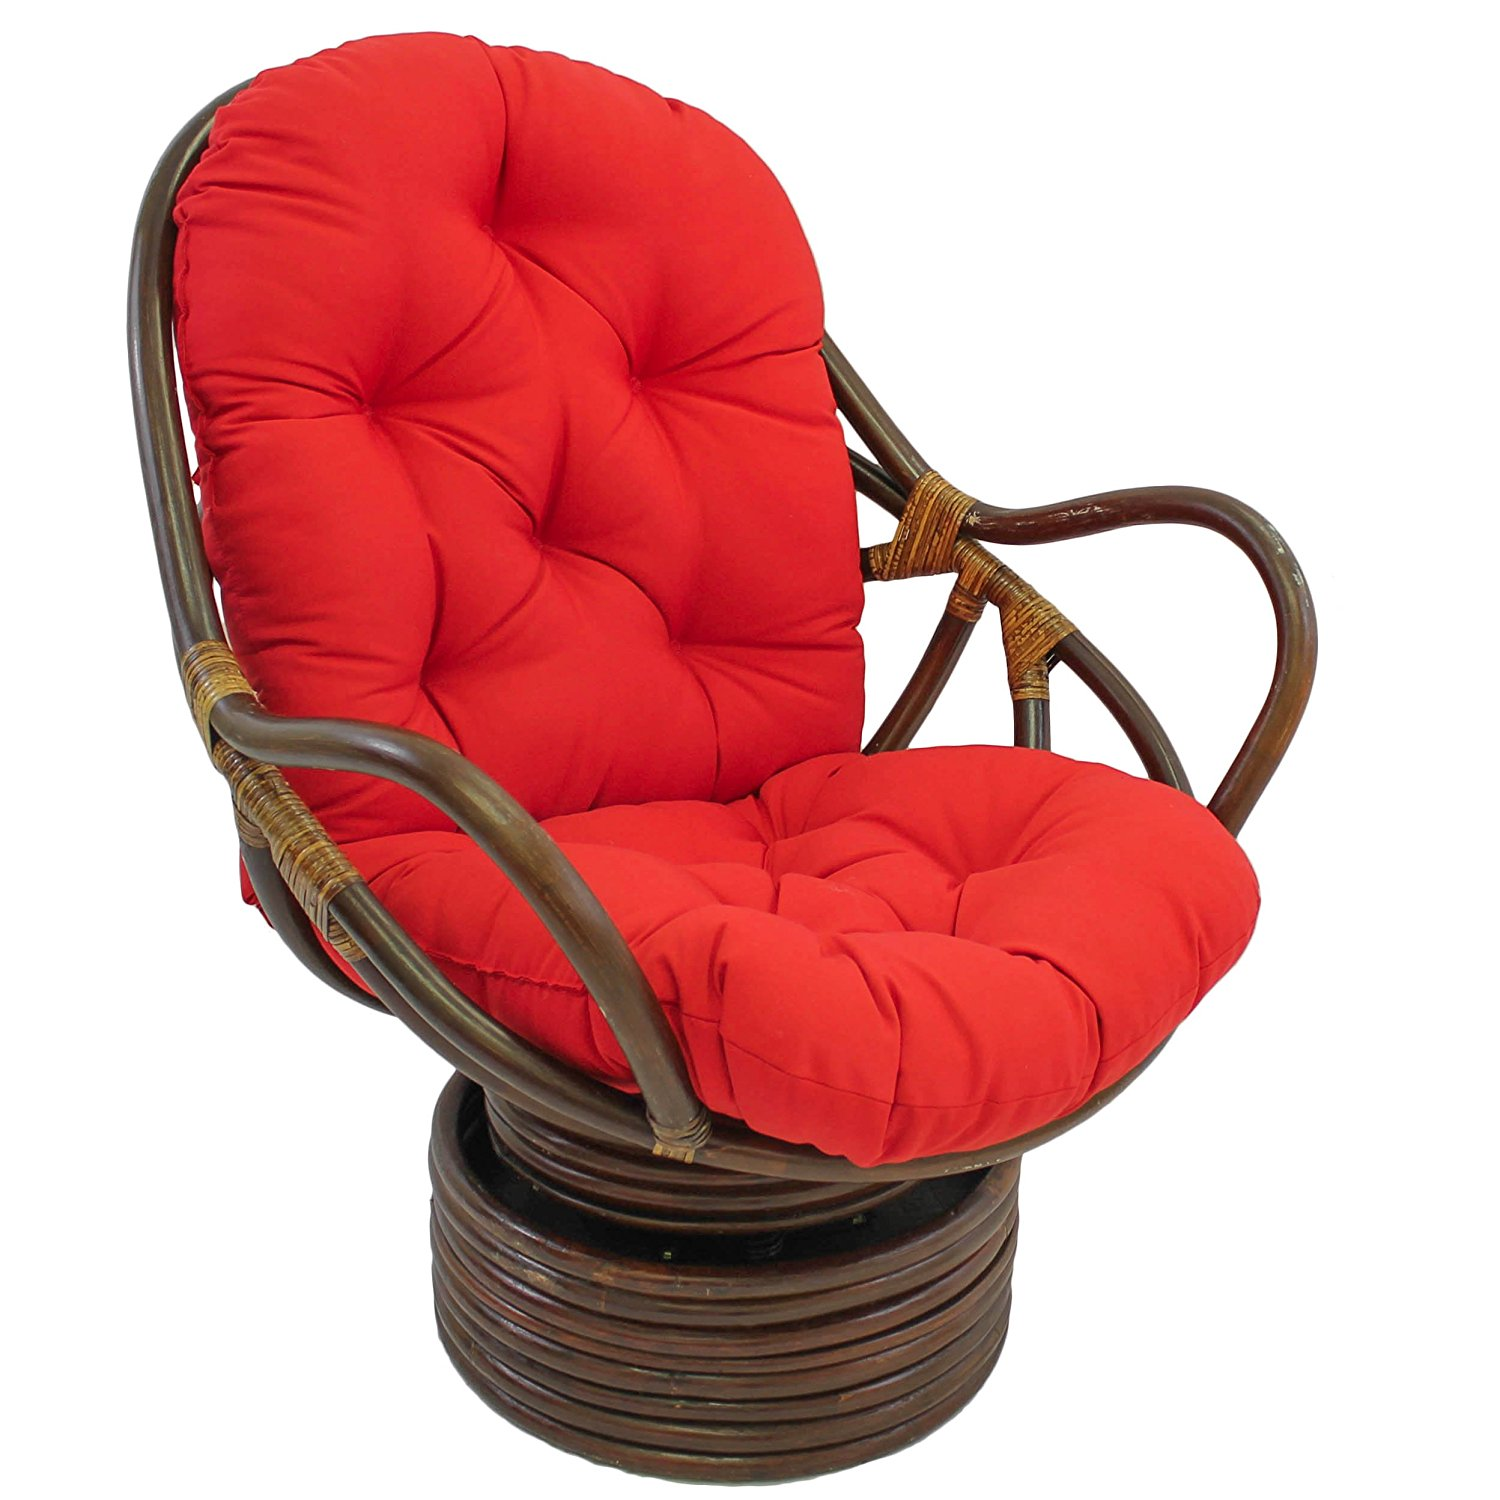 Swivel Chair Cushions | Rattan Swivel Rocker | Outdoor Wicker Swivel Rocker Chair